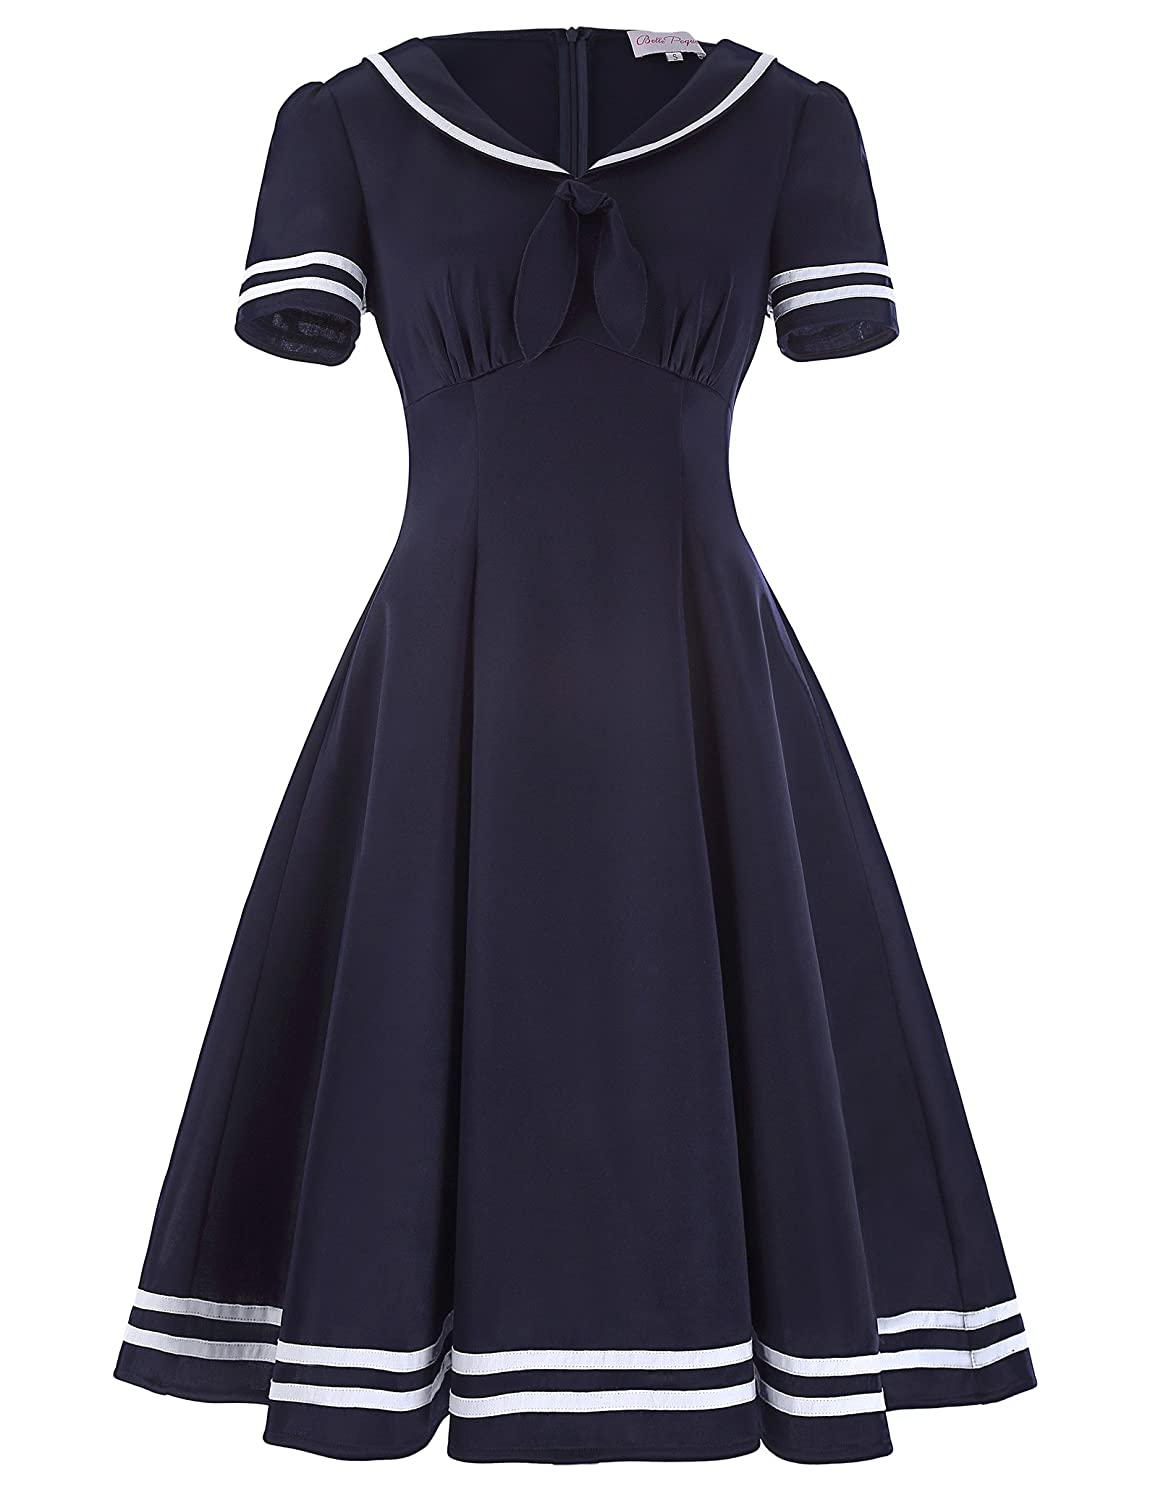 1950s Swing Dresses | 50s Swing Dress Belle Poque Womens Retro Sailor Dress Short Sleeve Cocktail Party Swing Dress $29.99 AT vintagedancer.com